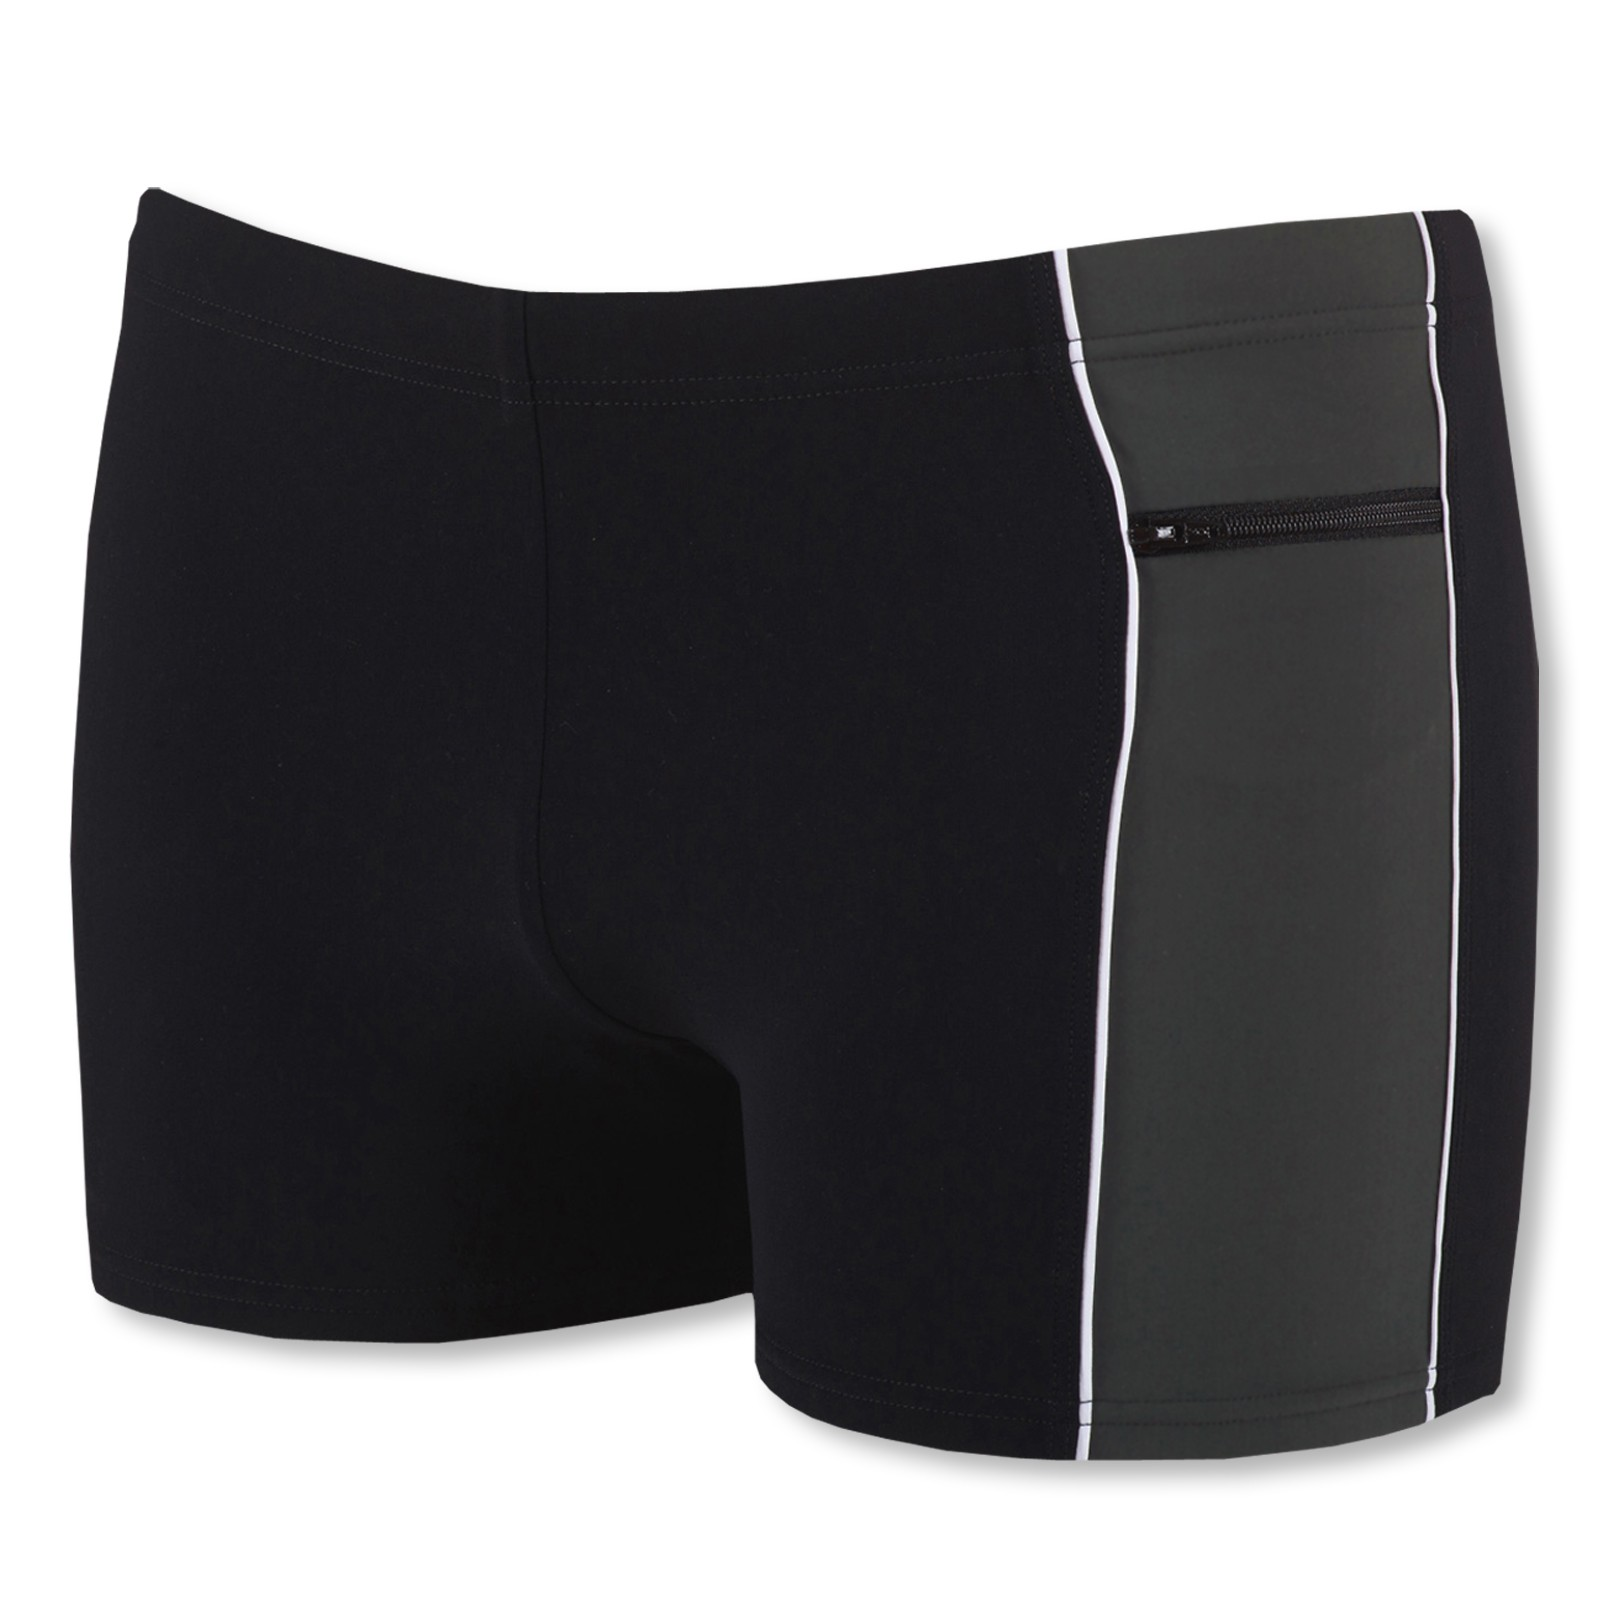 Arena Herren Sensitive Panel Badehose 1B137 M L XL XXL in black/asphalt/white